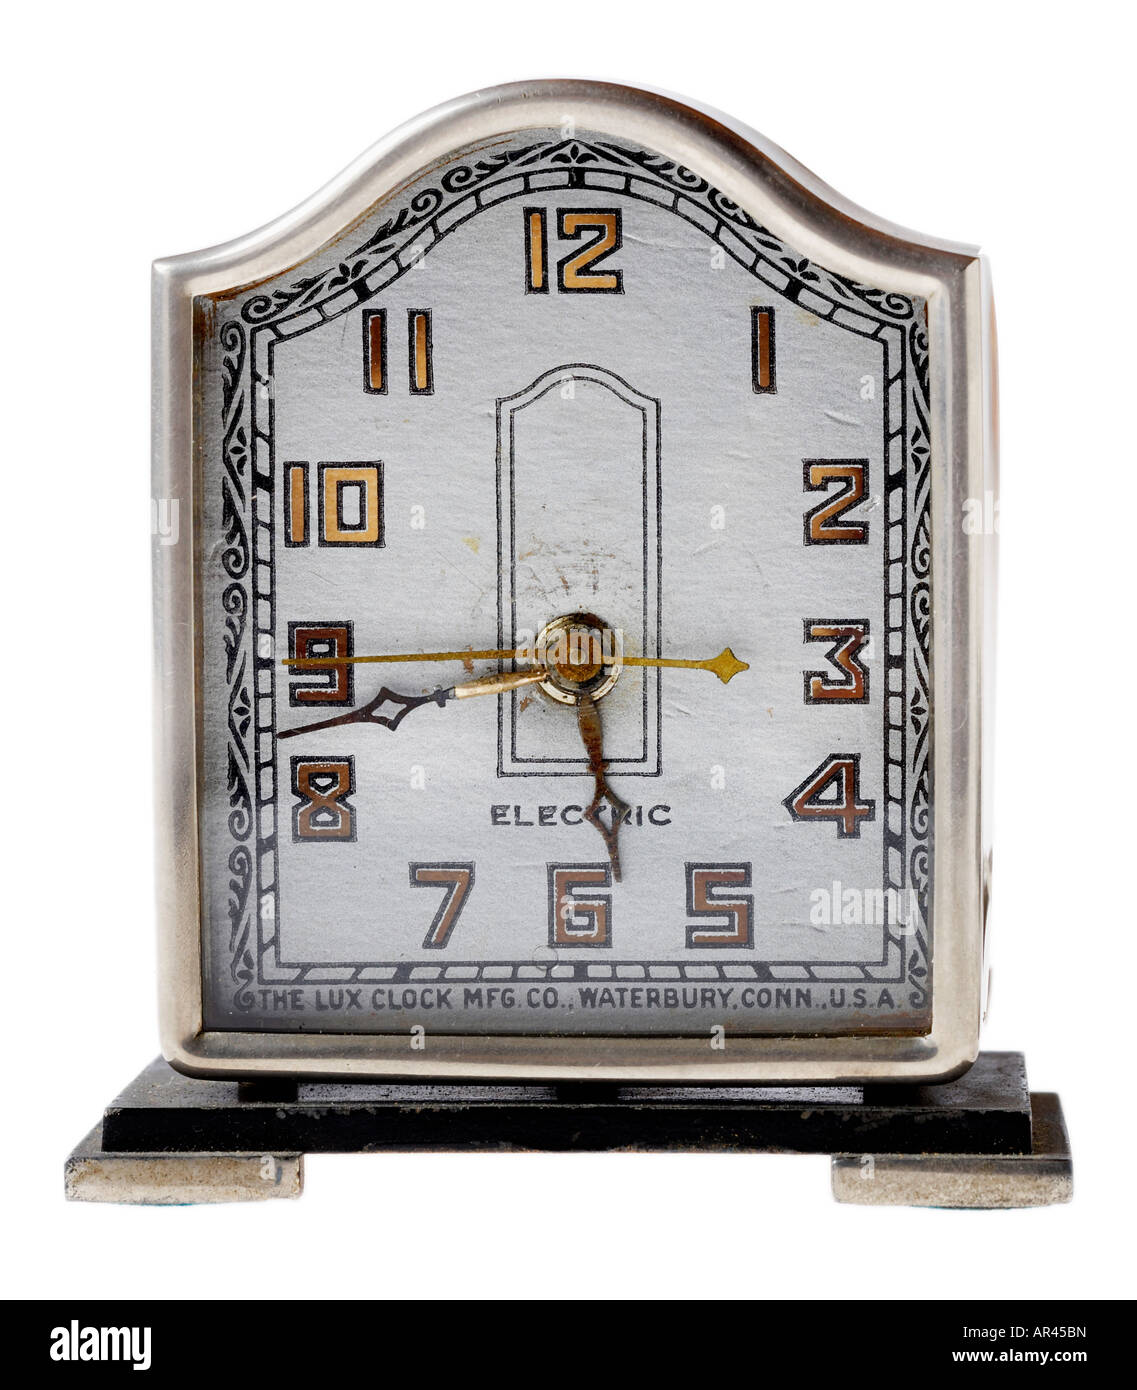 vintage collectible antique clock - Stock Image